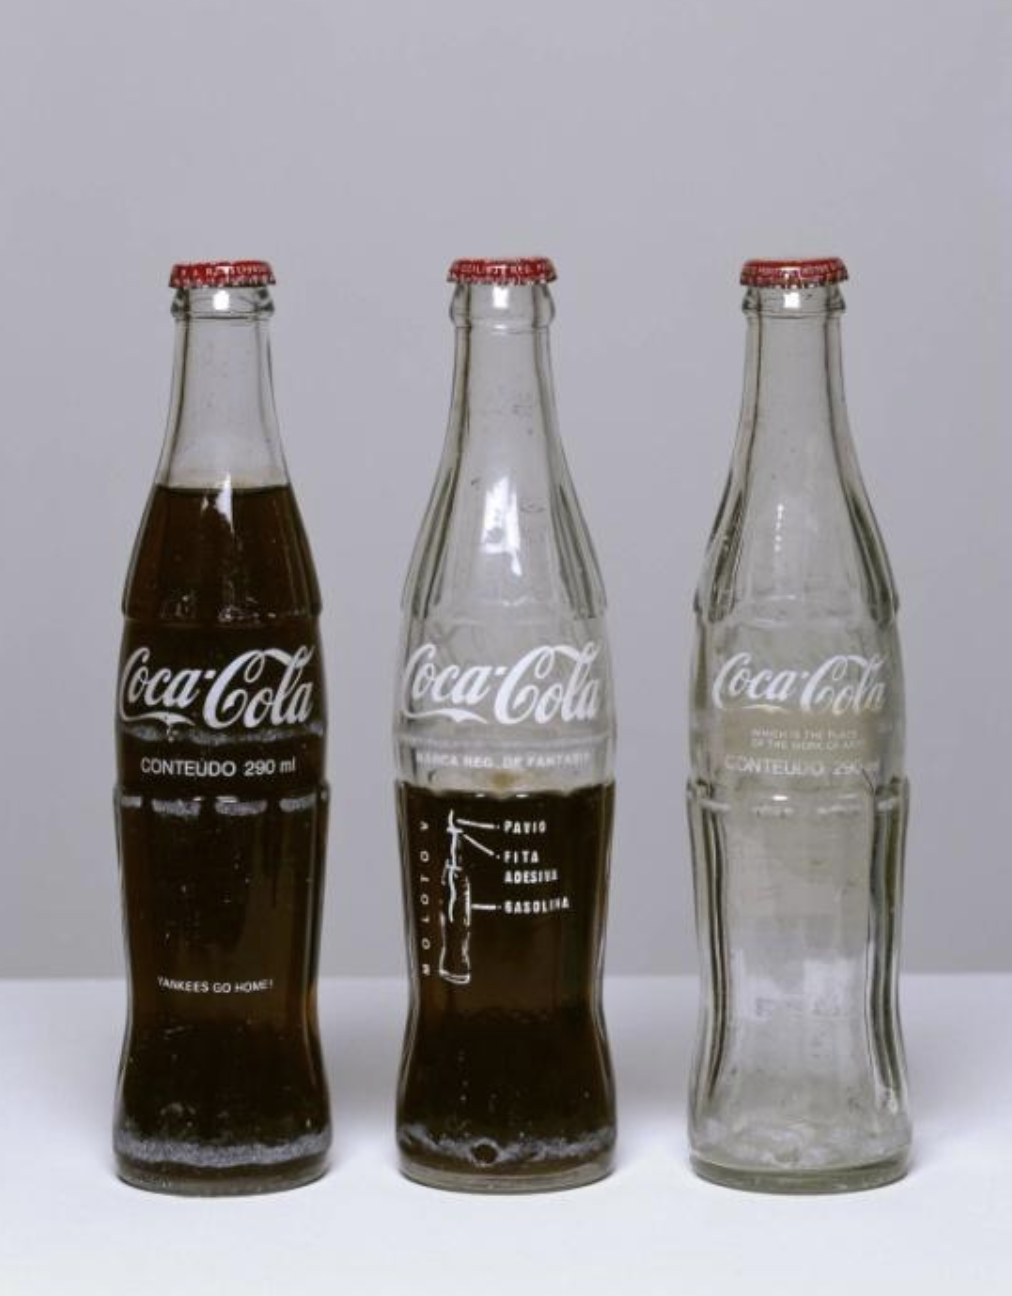 Cildo Mereles, I nsertations into Idealogical Circuits: Coca-Cola Project  (1970) Glass bottles with adhesive labels Tate